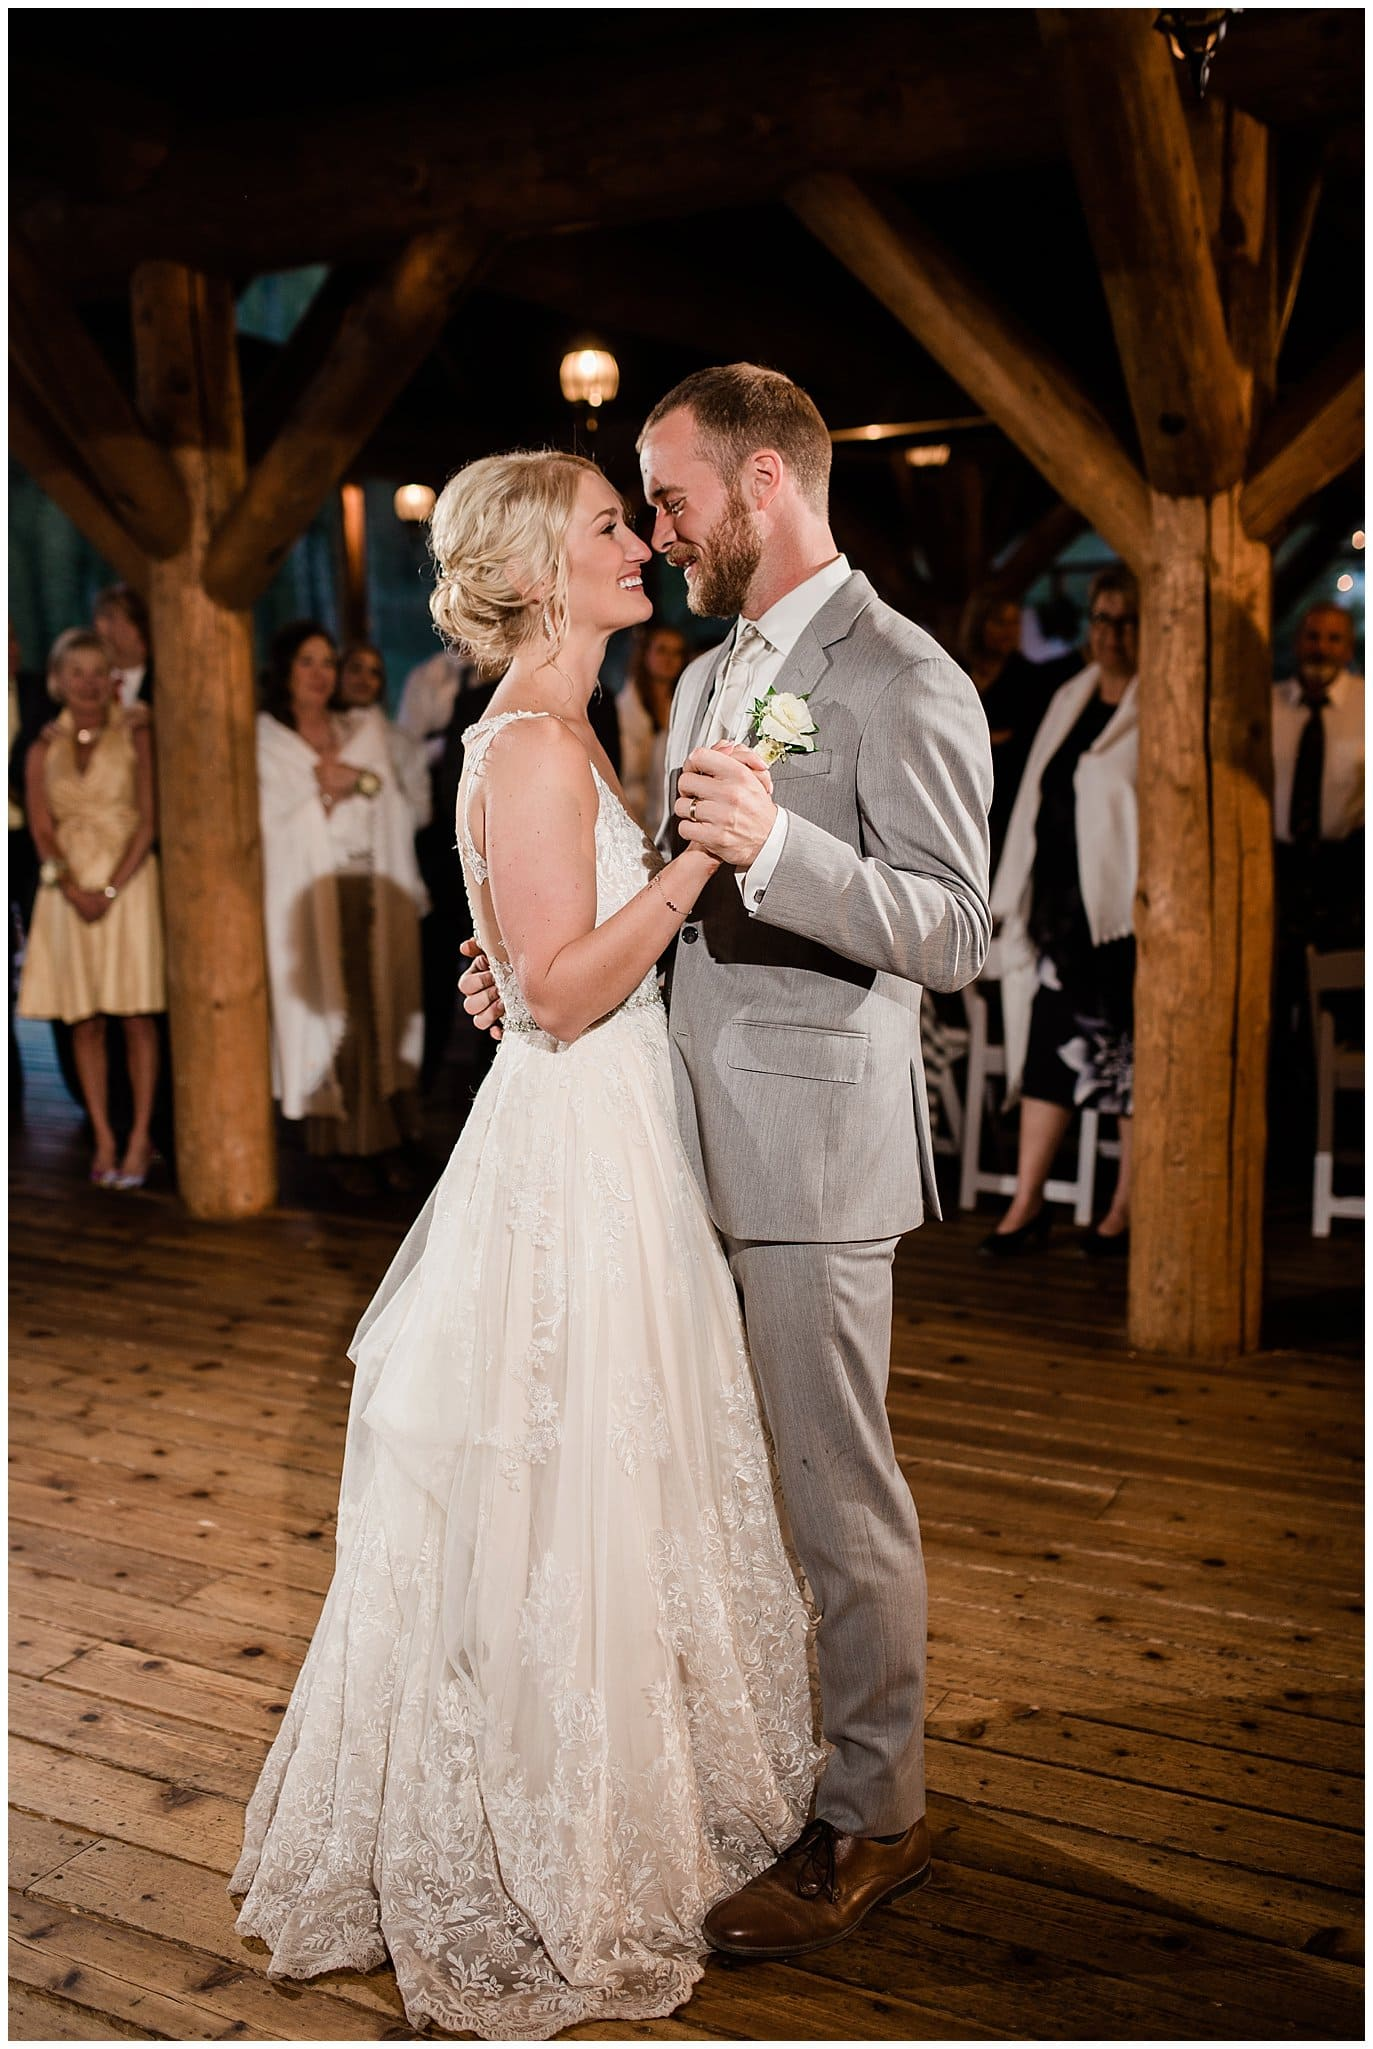 bride and groom first dance at Piney River Ranch wedding by Aspen wedding photographer Jennie Crate, Photographer